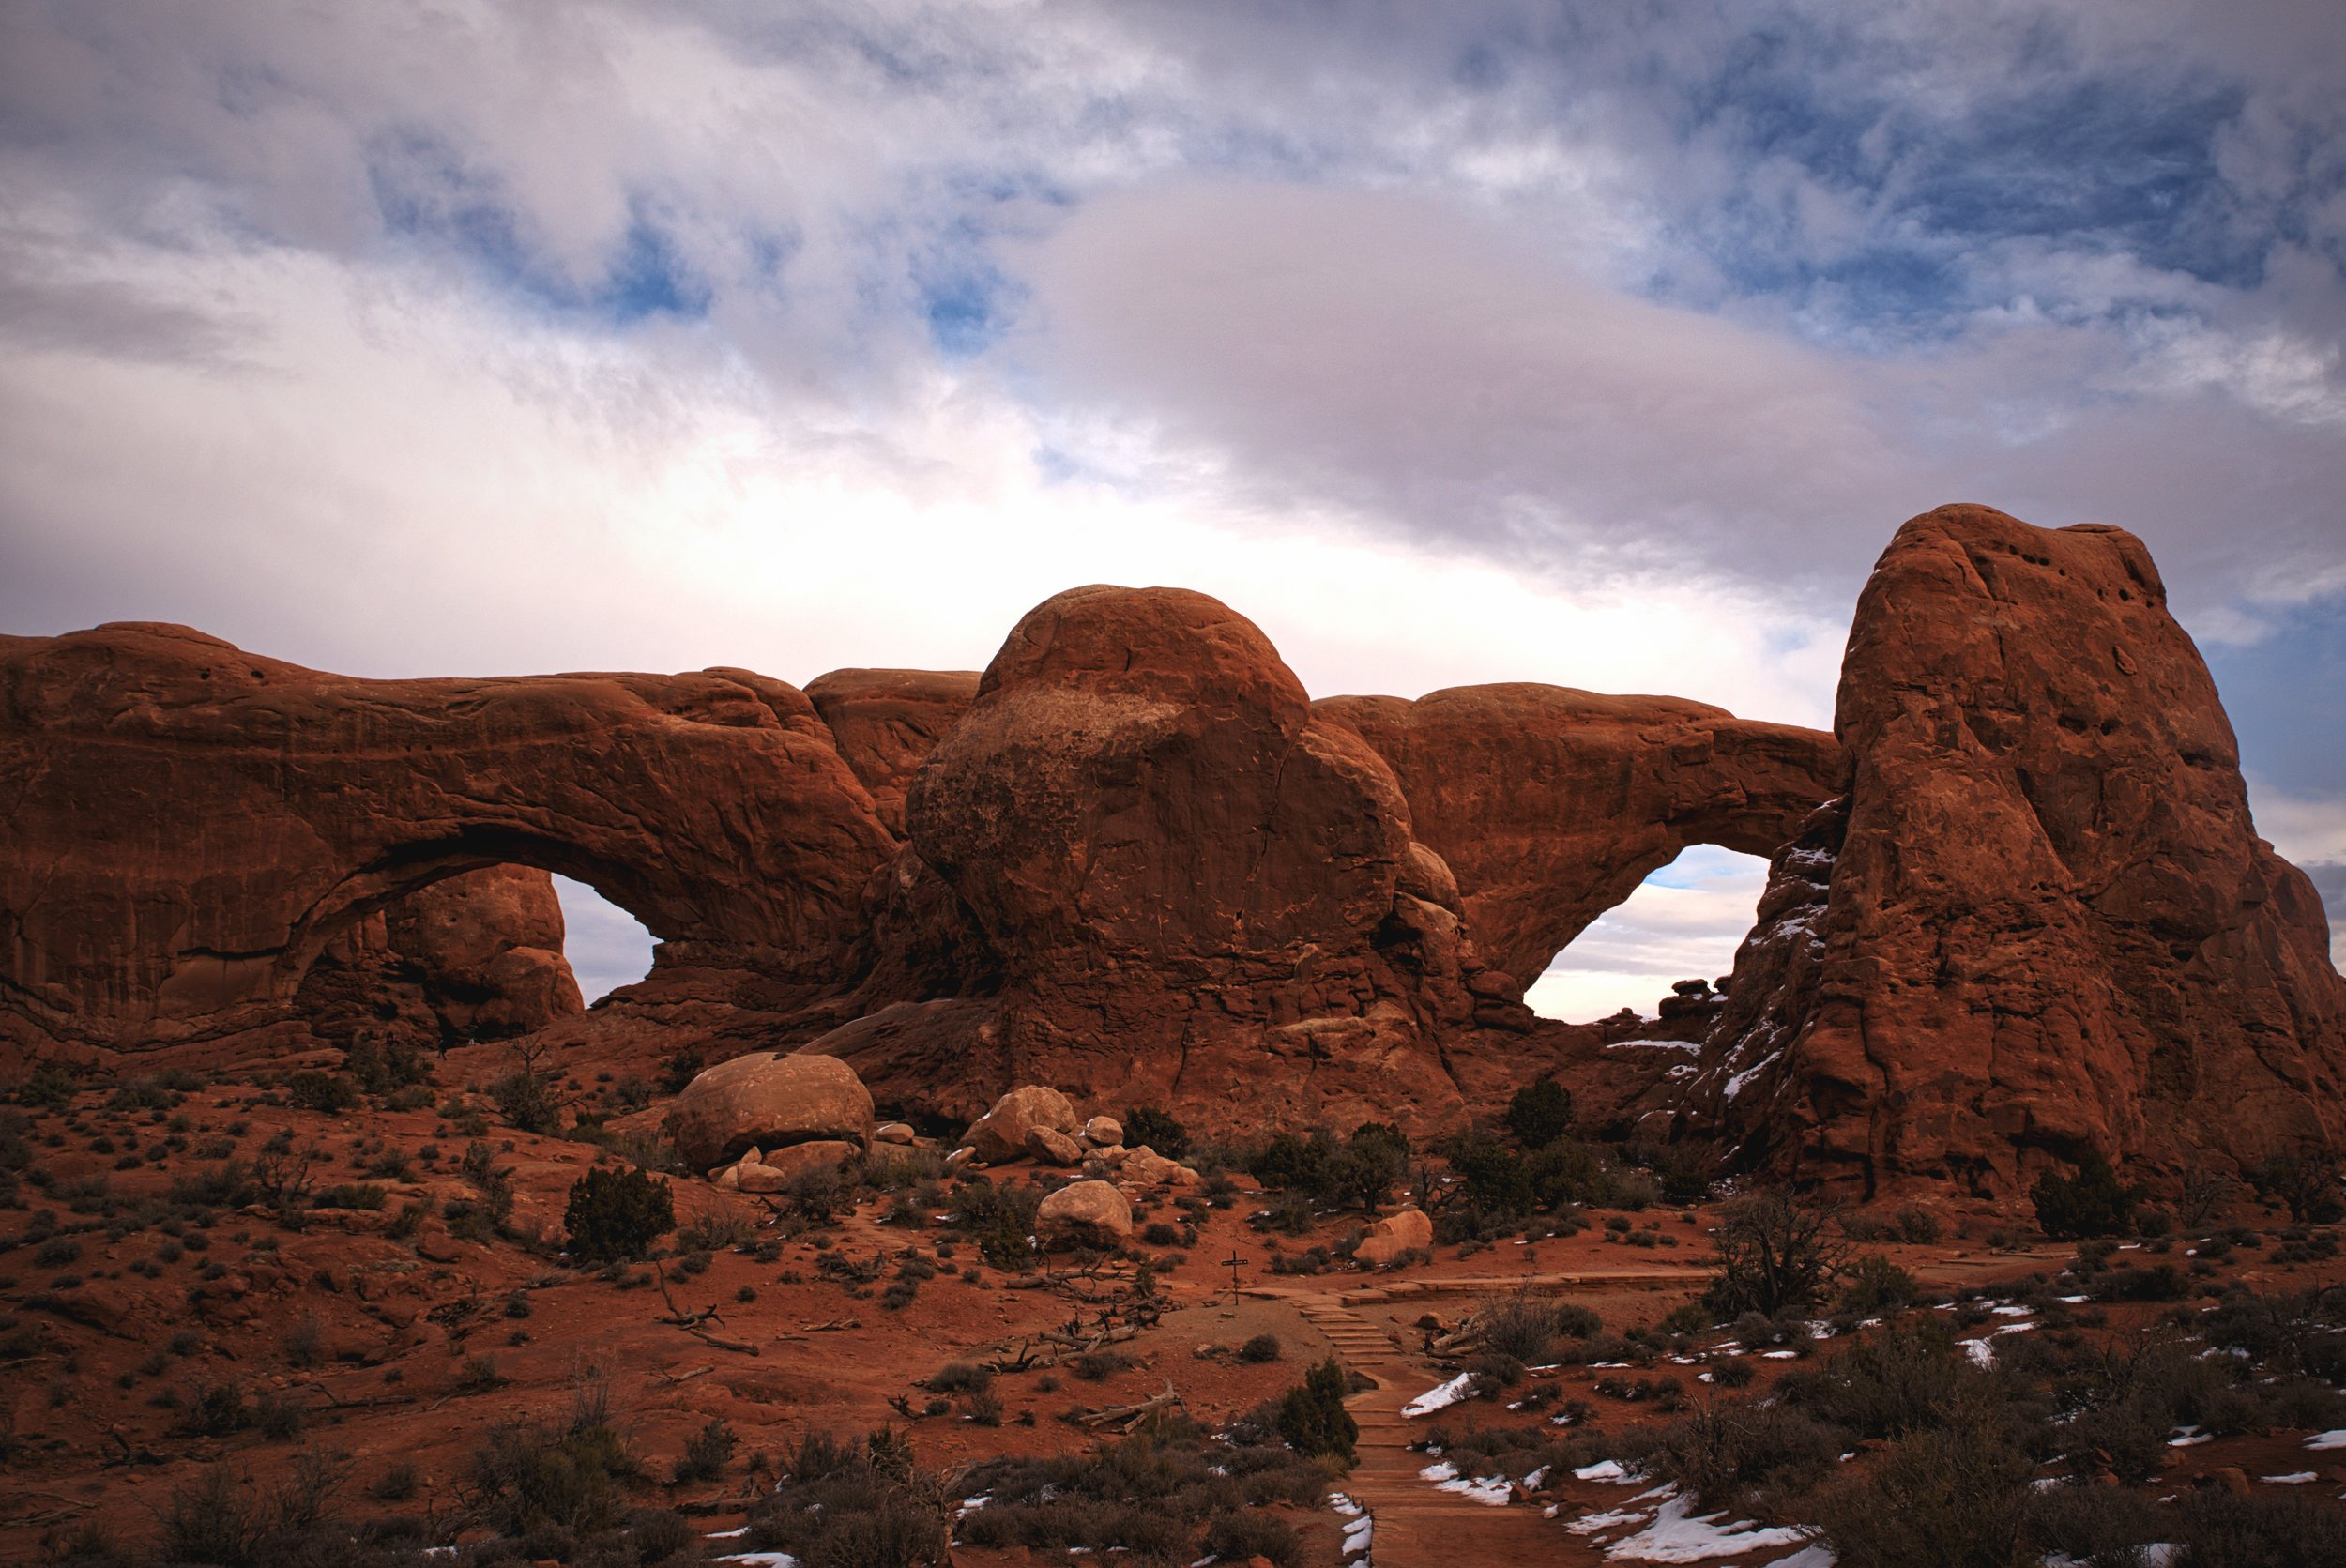 The North and South windows are sometimes called the Spectacles because of the giant nose in between them.